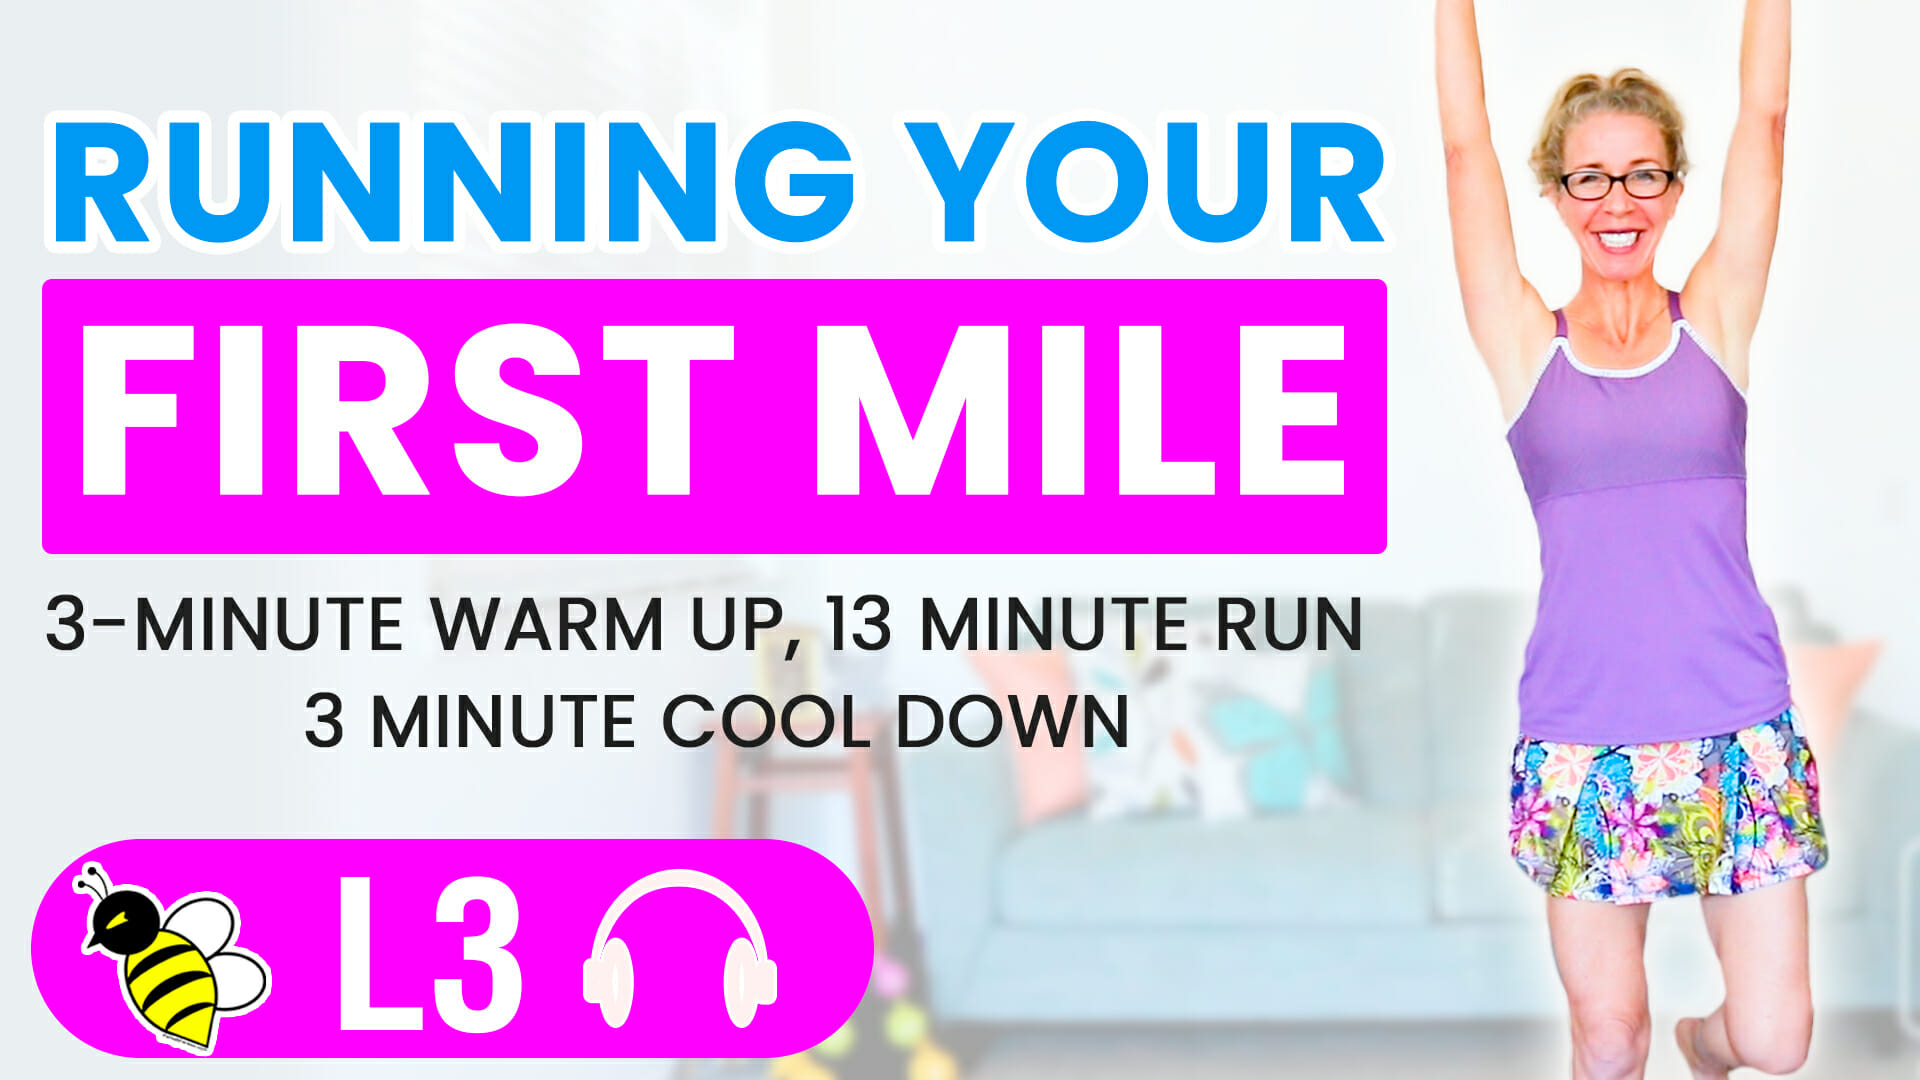 RUNNING your FIRST MILE, 13 minute RUN with 3 minute warm up and cool down